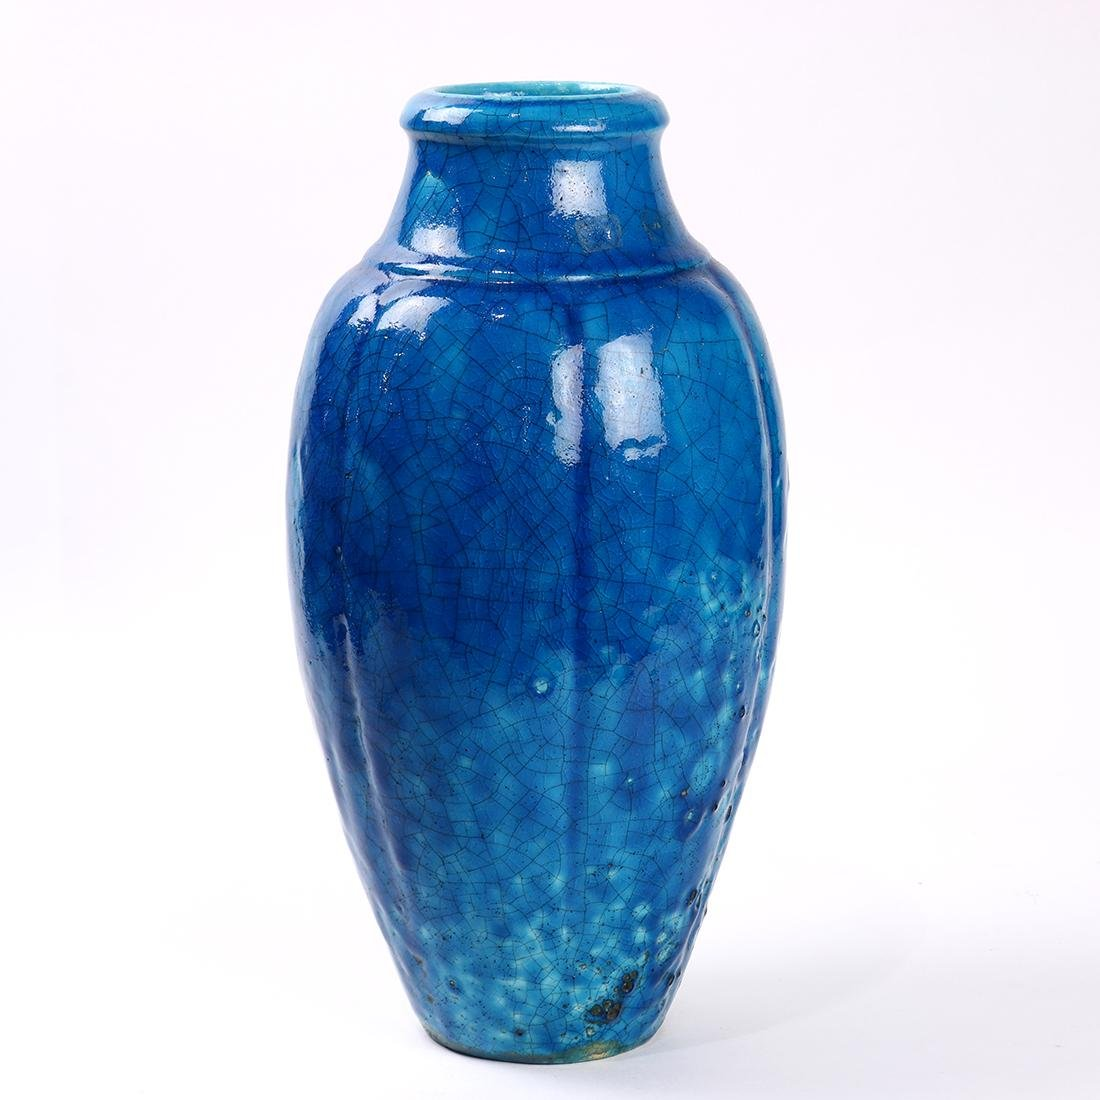 Raoul Lachenal Art Deco vessel, early 20th Century, the